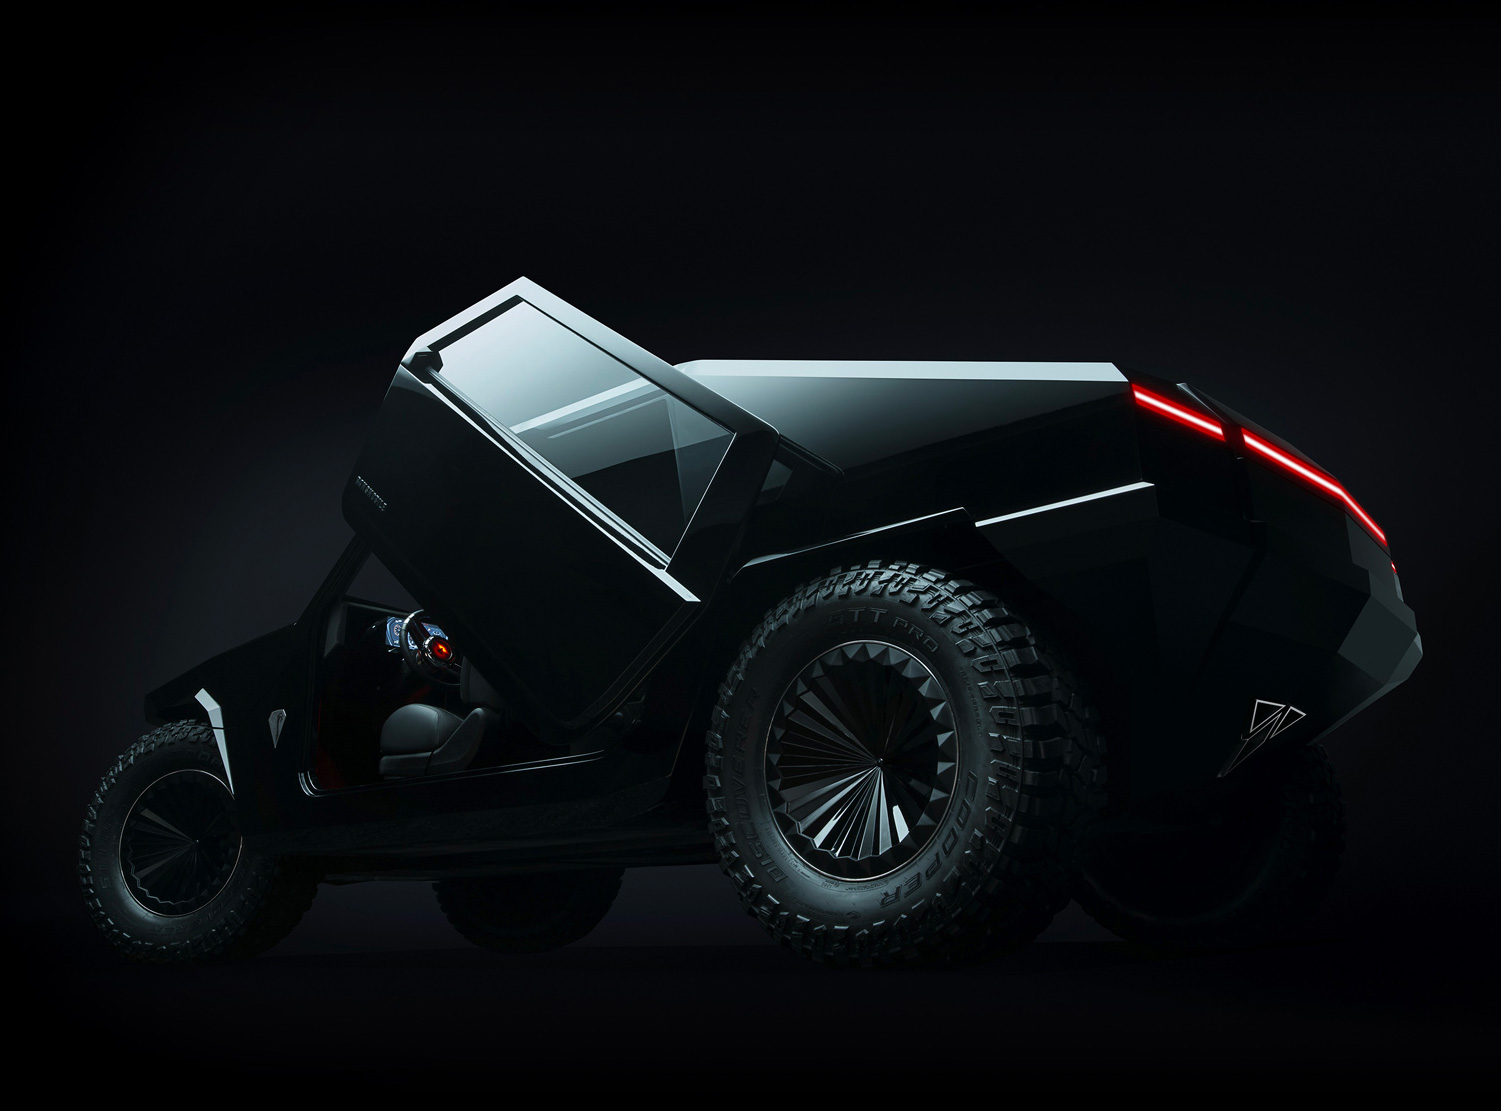 The Ramsmobile RM-X2 is an Exotic Hypercar from the Future at werd.com